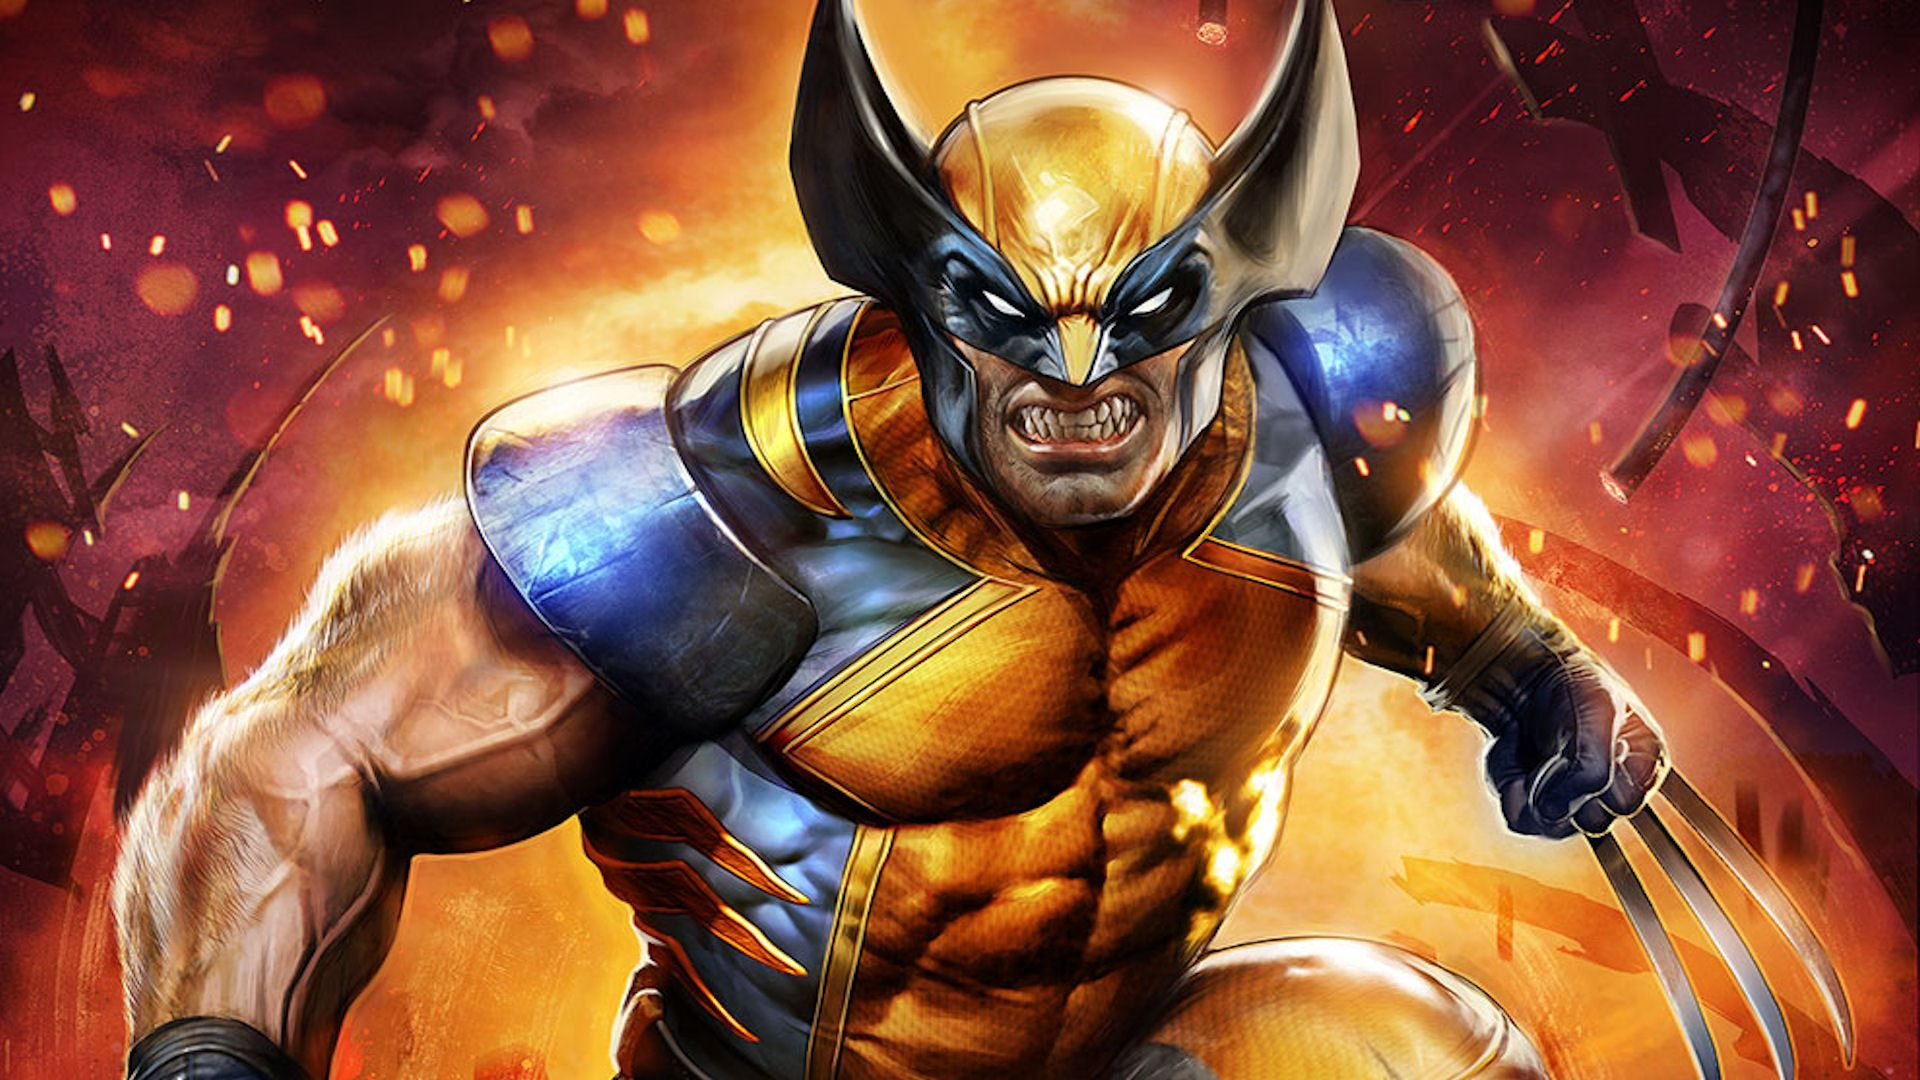 Cool Marvel Wallpapers 1 Epicheroes Select 45 X Hd Image Gallery Epicheroes Movie Trailers Toys Tv Video Games News Art Wolverine Art Wolverine Marvel Marvel Wallpaper